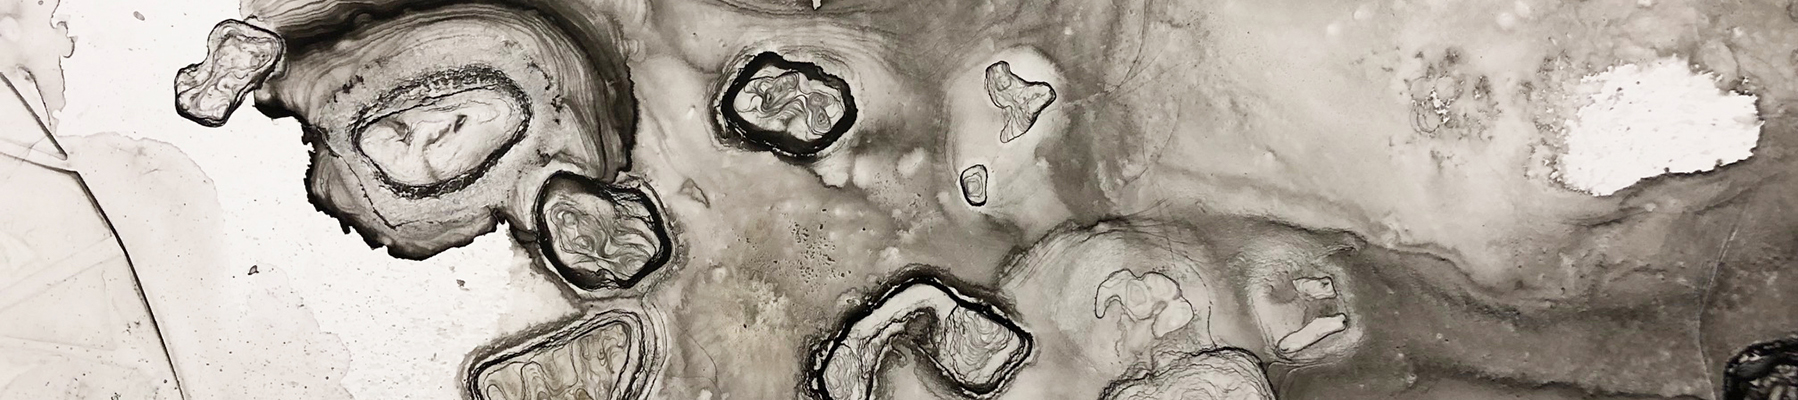 An abstract ink painting in black and gray.